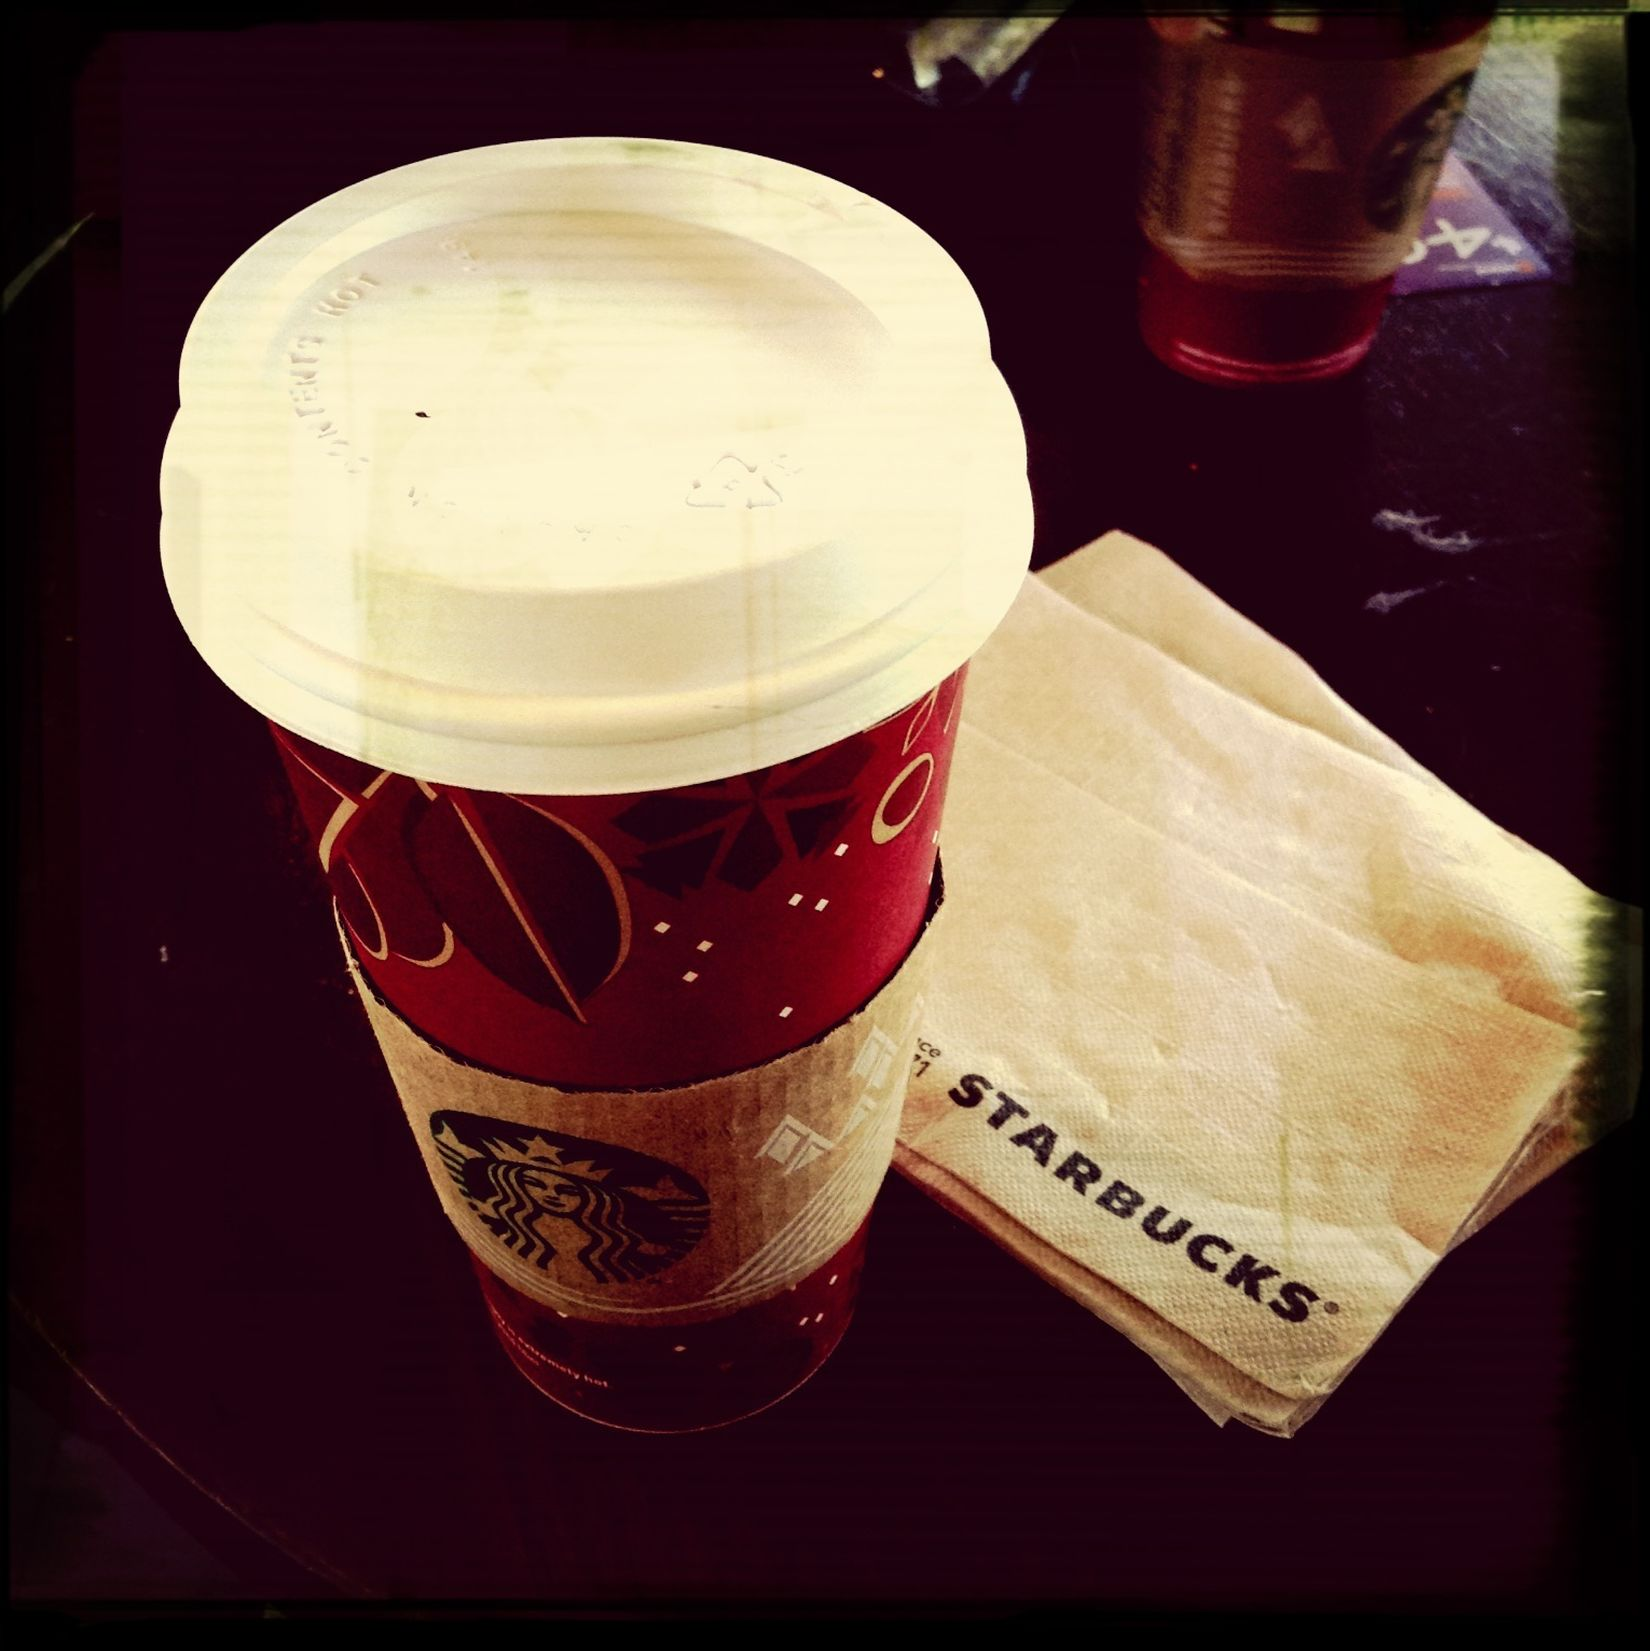 As usual. Coffee